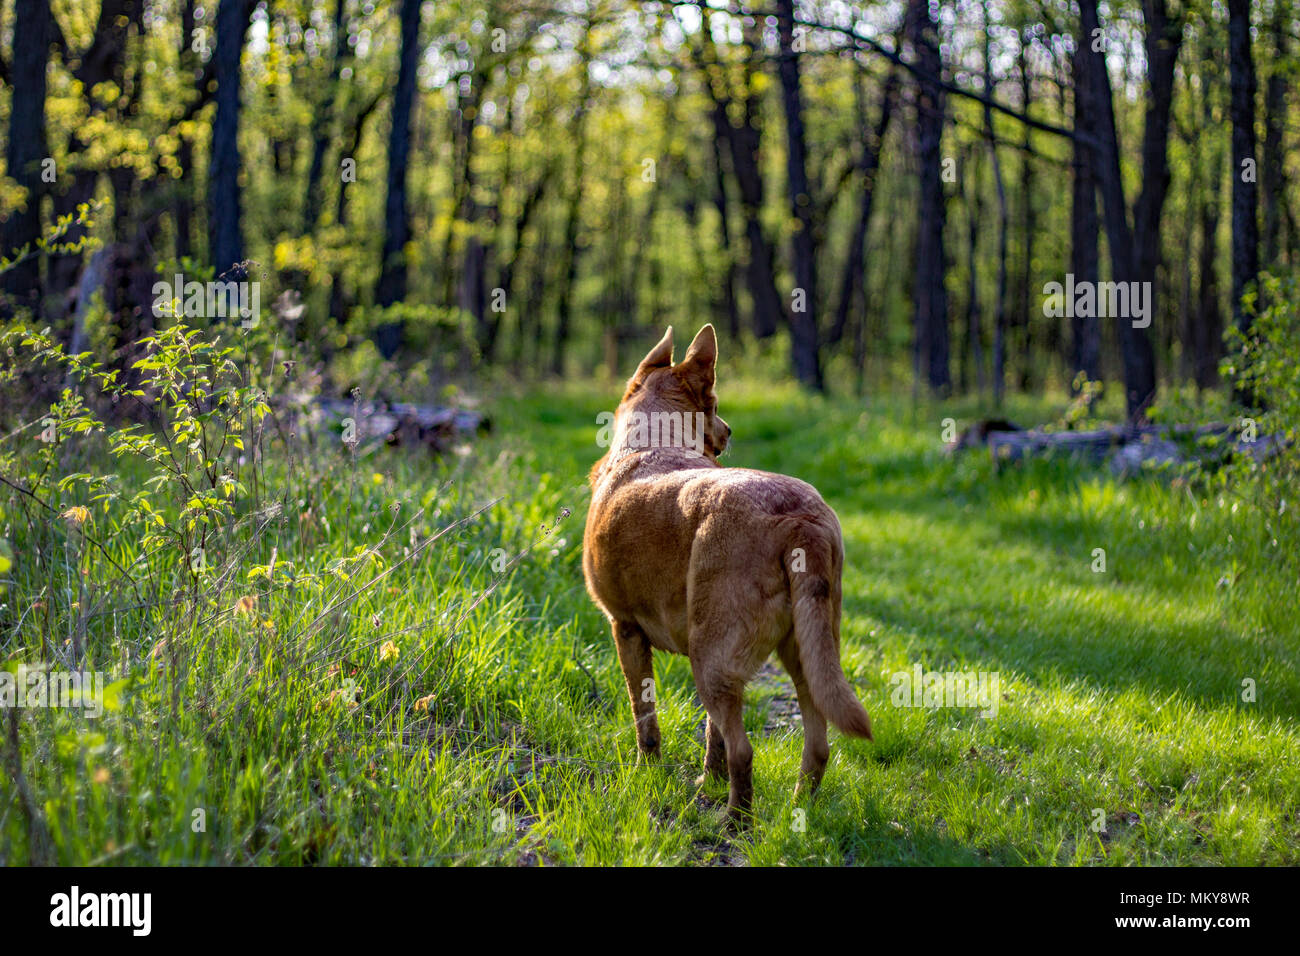 Dog wandering countryside during spring in rural Midwest, USA. - Stock Image